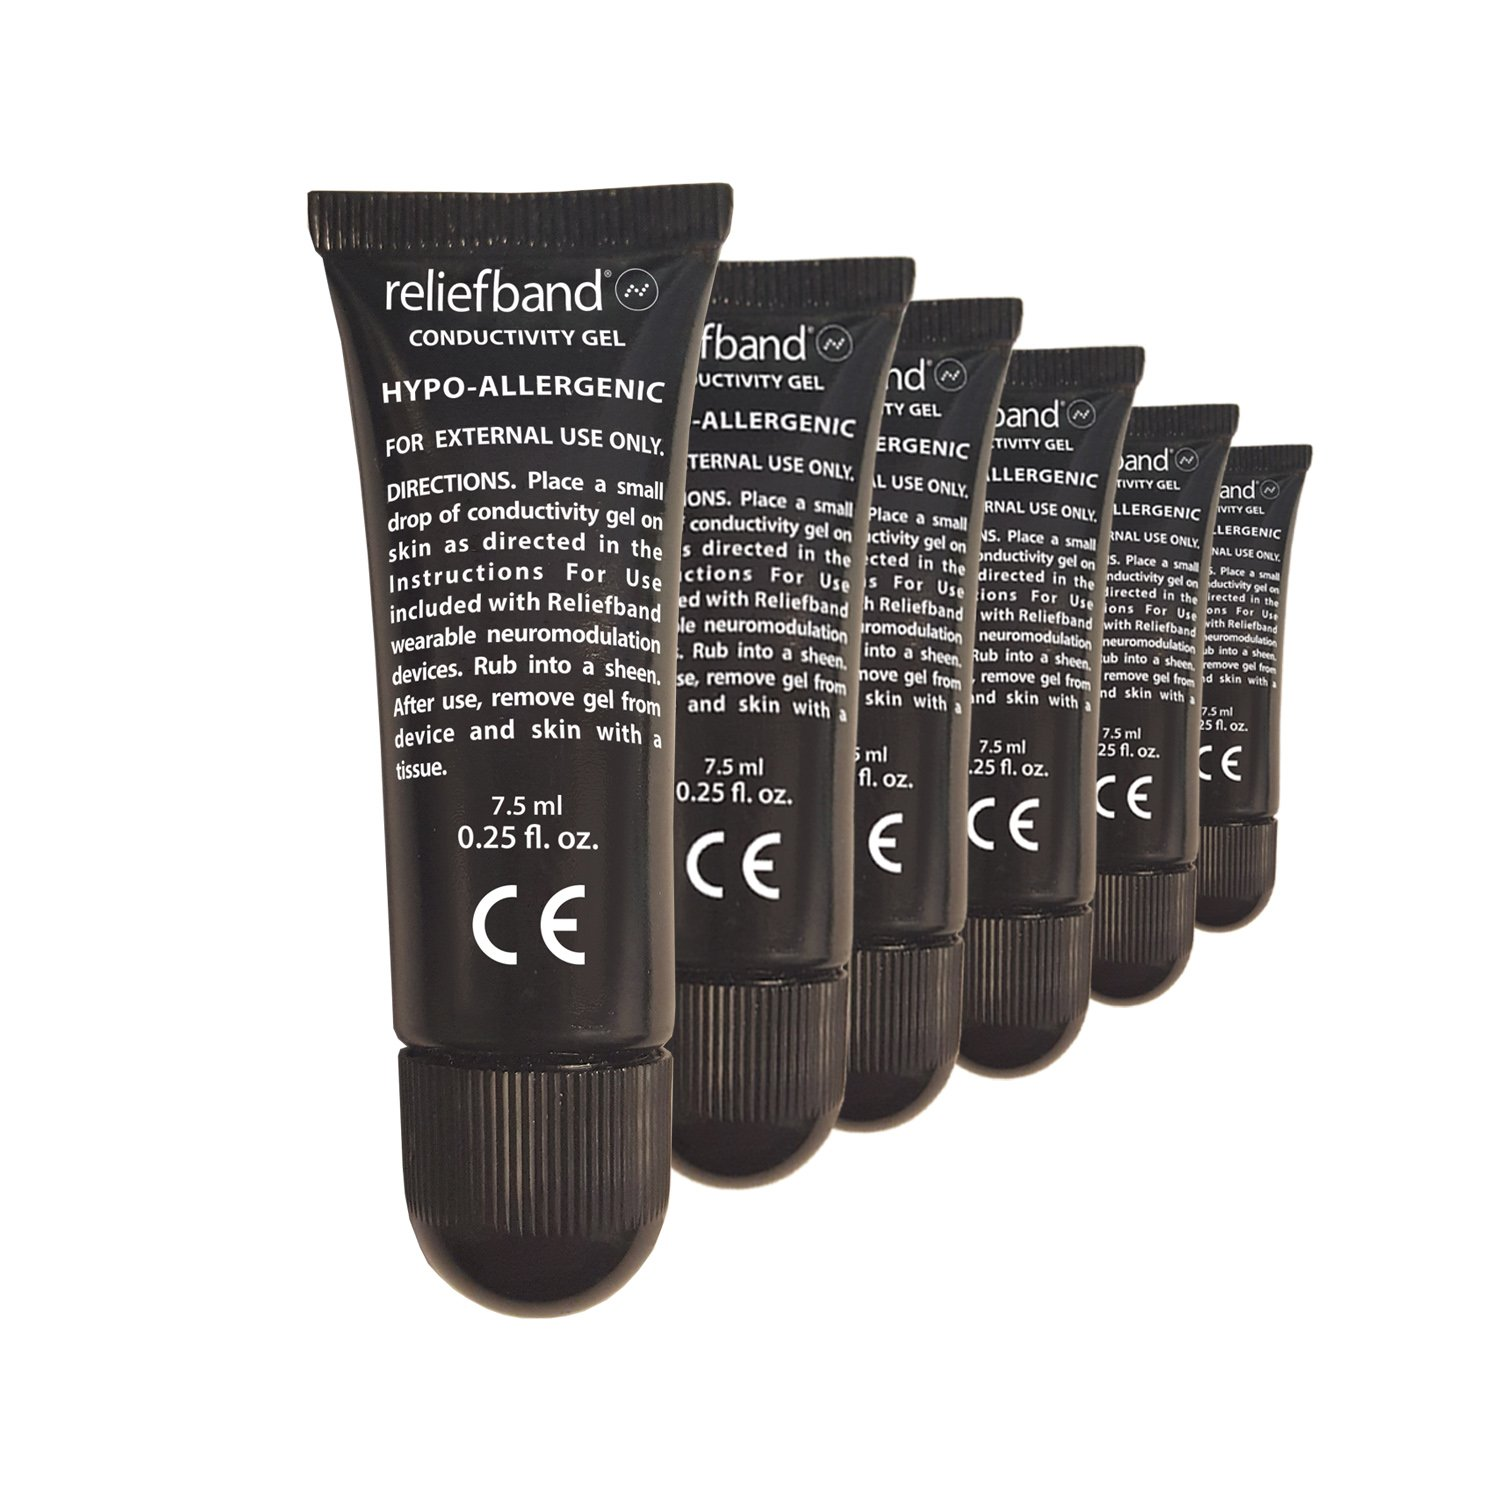 Reliefband 6 Pack Conductivity Gel for Motion Sickness Wristband - Hypo-Allergenic Bundle of 6 Gel Tubes by Reliefband